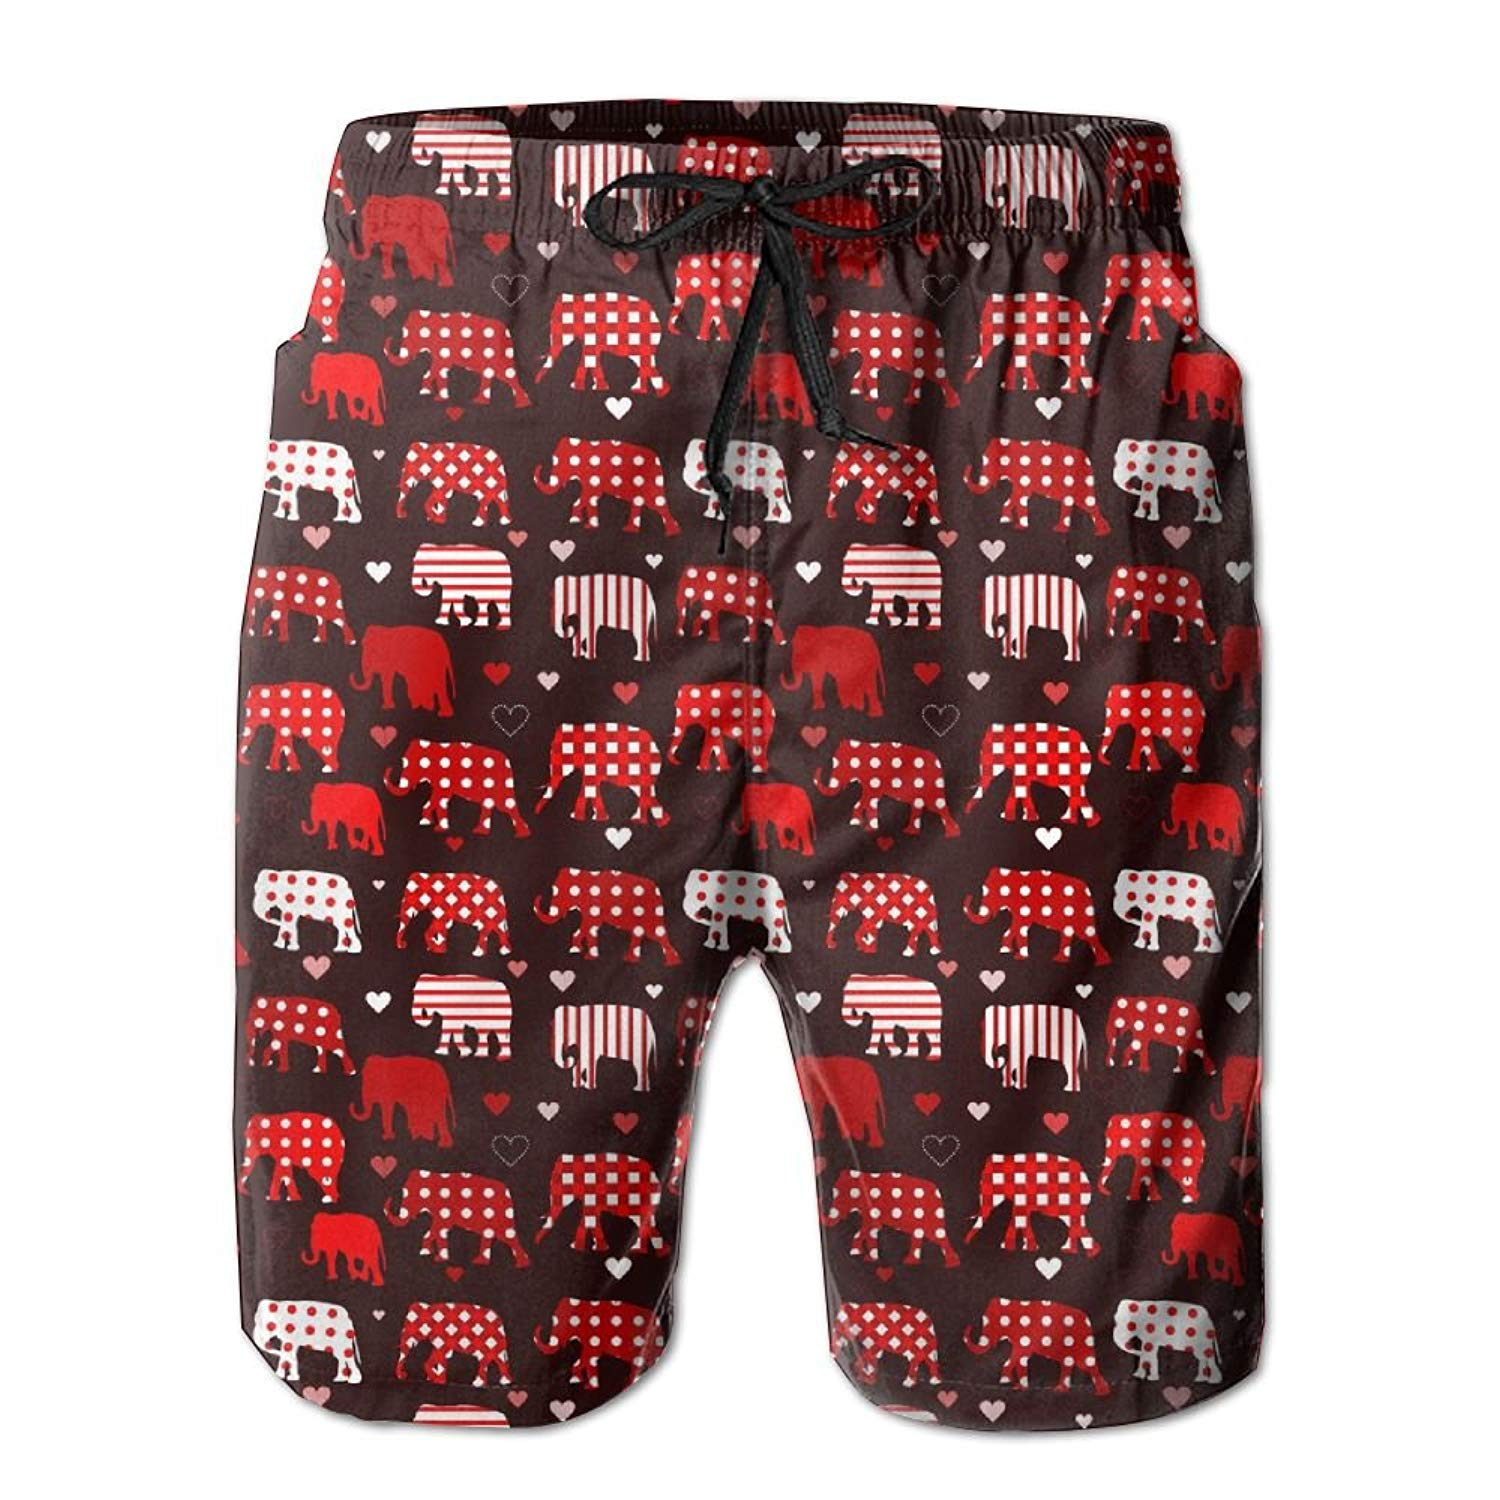 ca5d63c4ff Get Quotations · Vt9RE1k Men's Red Striped Spotted Elephant Swim Trunks  Beach Elastic Shorts Cotton Pocket Loose Shorts